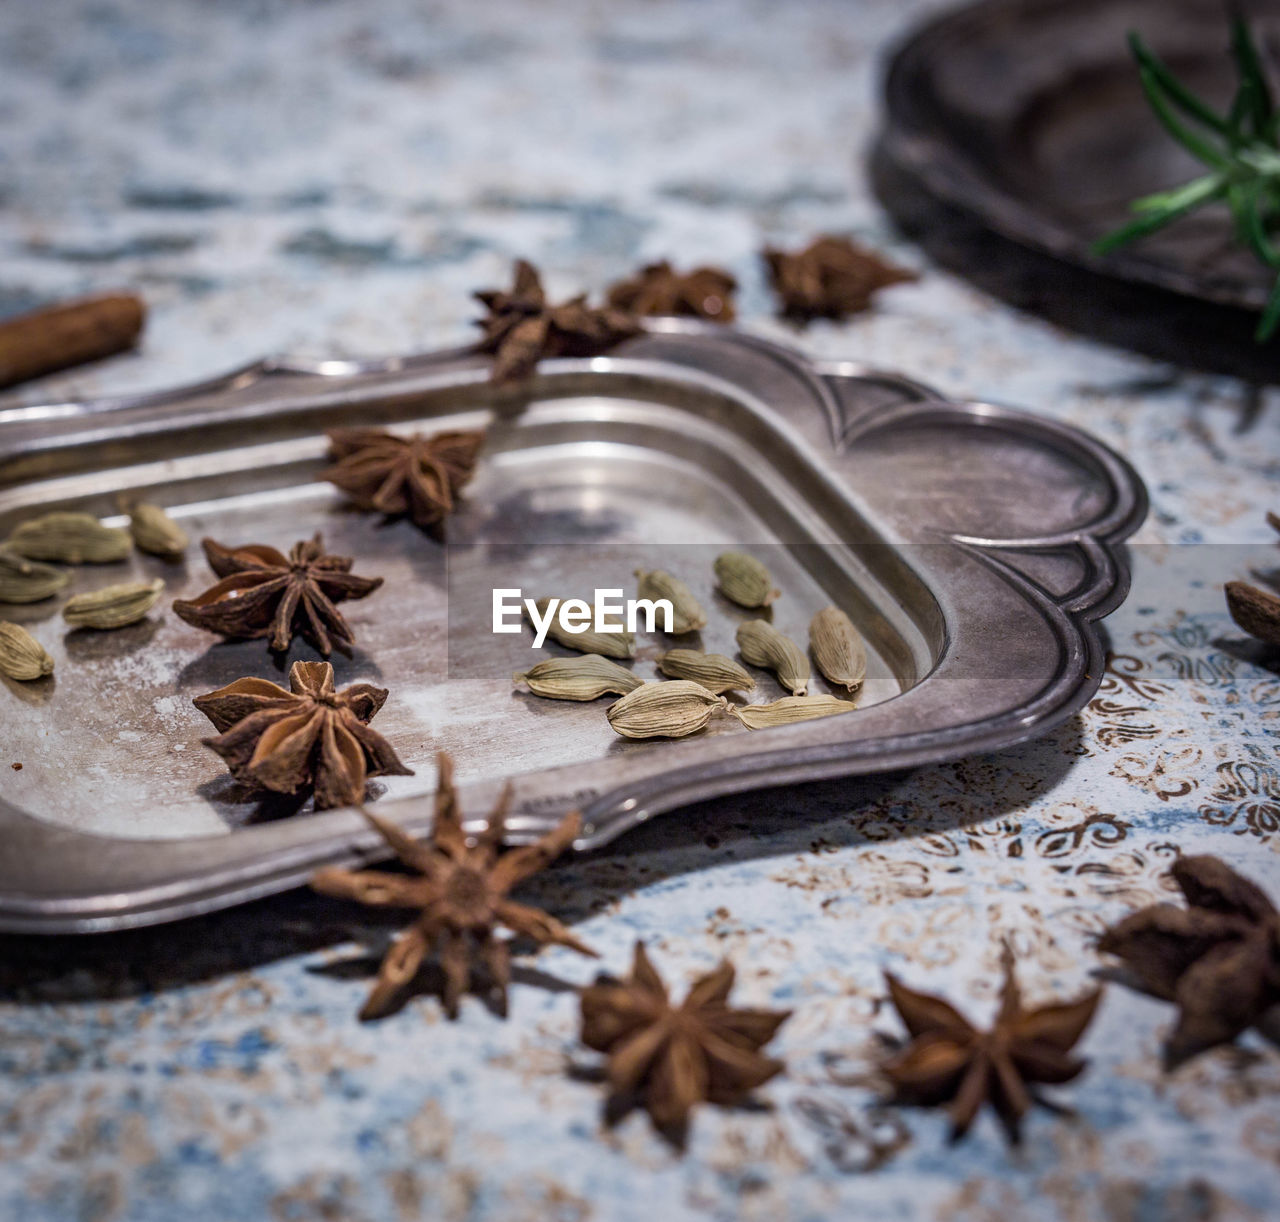 spice, food and drink, food, cinnamon, star anise, freshness, no people, close-up, ingredient, wood - material, high angle view, selective focus, kitchen utensil, anise, nut, healthy eating, vanilla, clove, dried food, hazelnut, cardamom